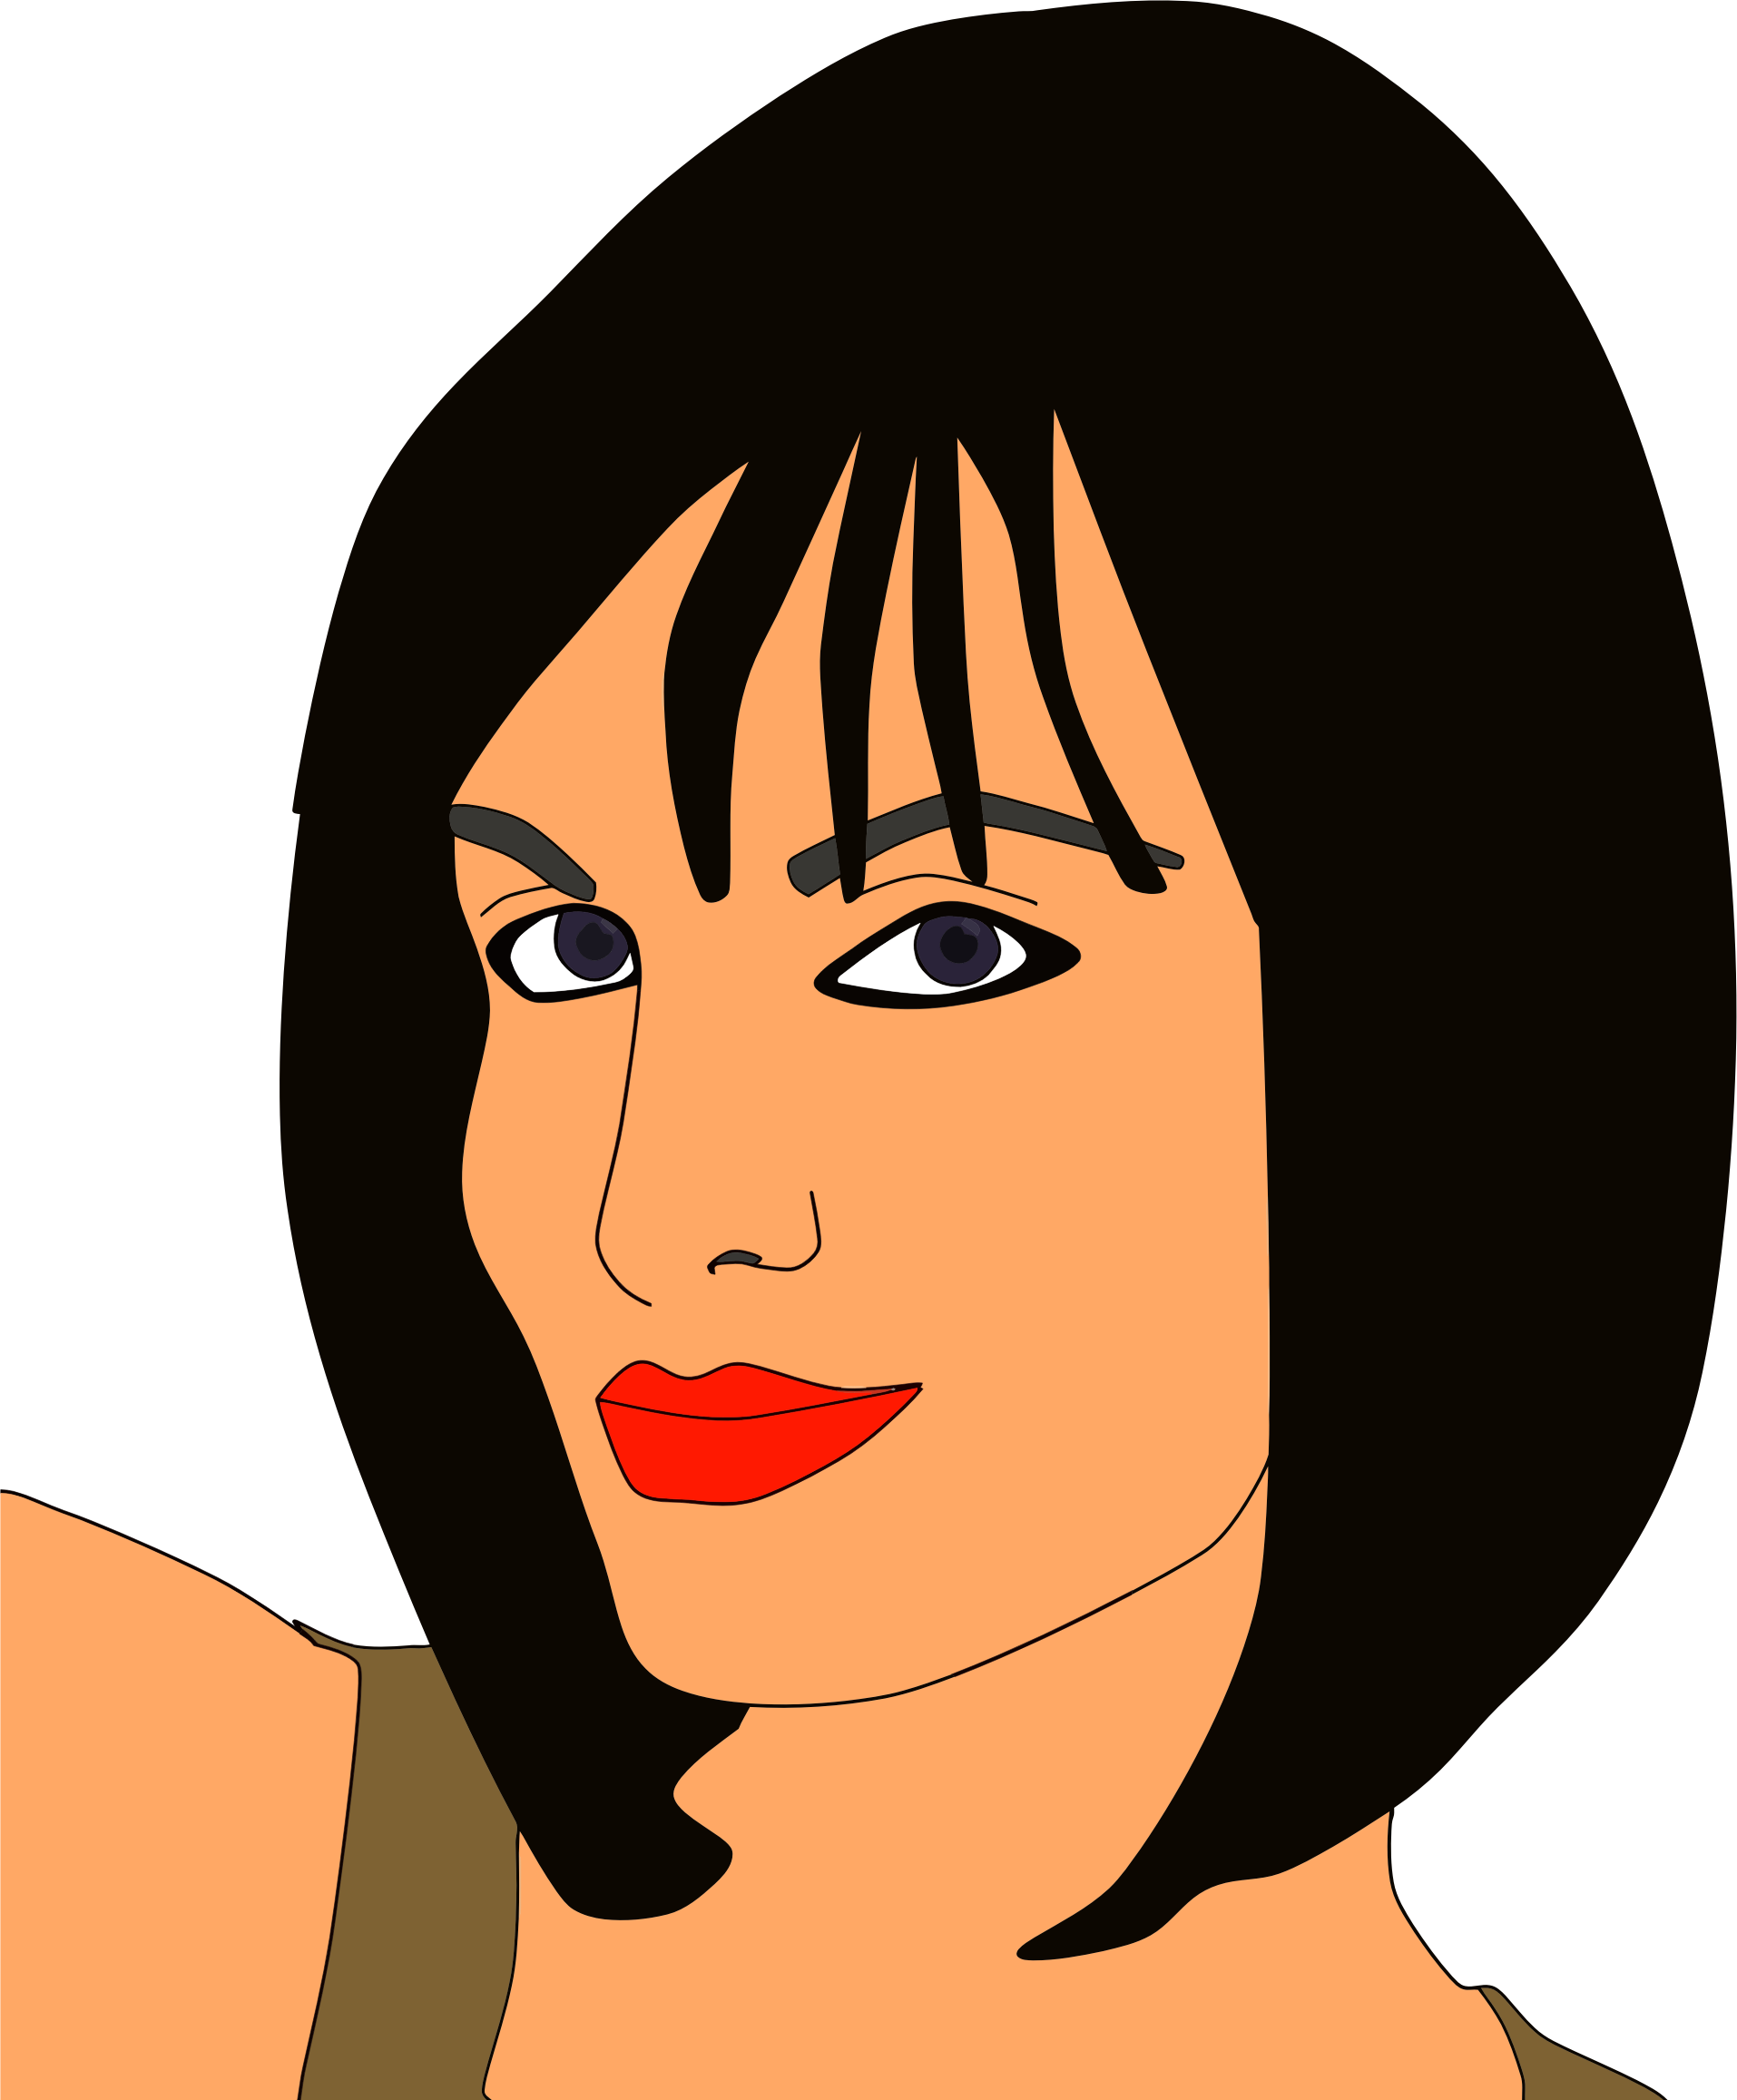 Clipart smile woman smile. Wryly smiling big image